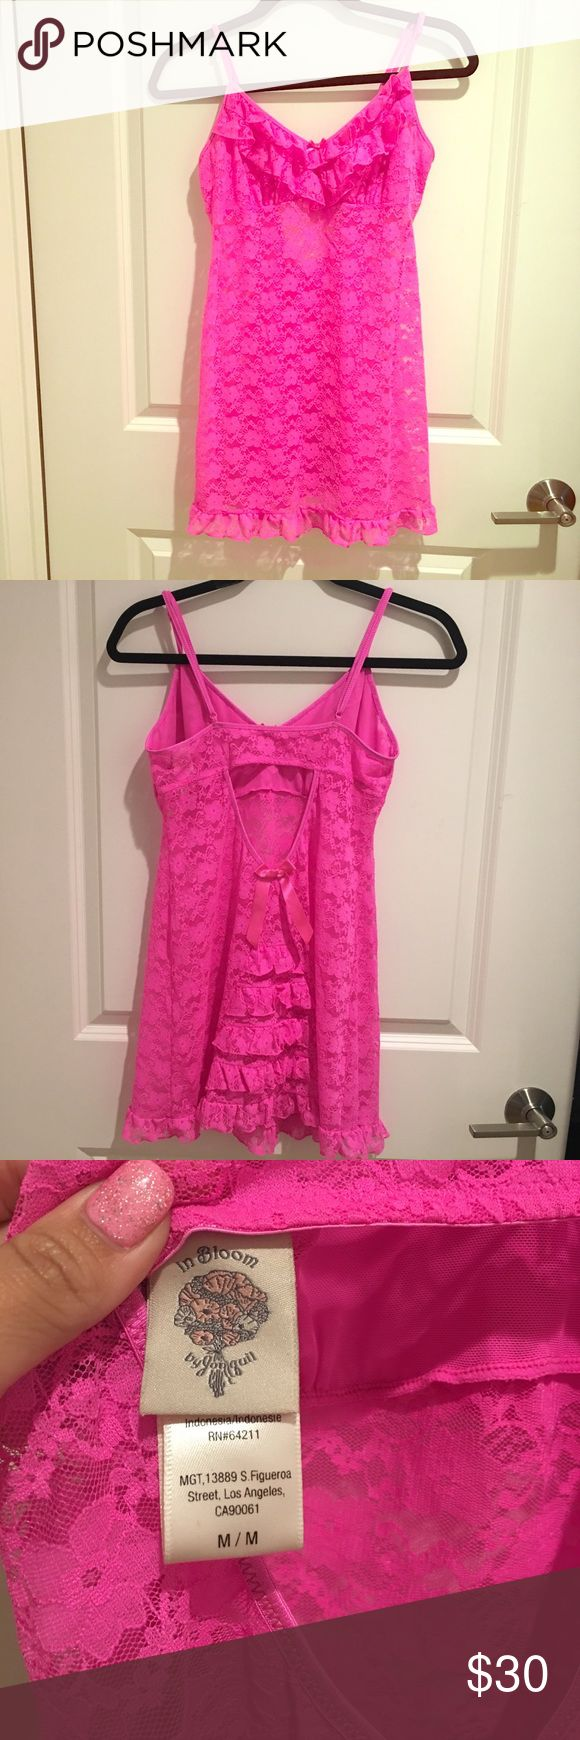 In Bloom Pink Lingerie from Nordstrom 🎈🌈👏 Look Hot and be comfy in In Bloom by Jonquil Garden Party Chemist HOT Pink purchased at Nordstrom Only worn once. 🎈👠🎉👄🔥👯 It's super soft and stretchy! In Bloom Intimates & Sleepwear Chemises & Slips